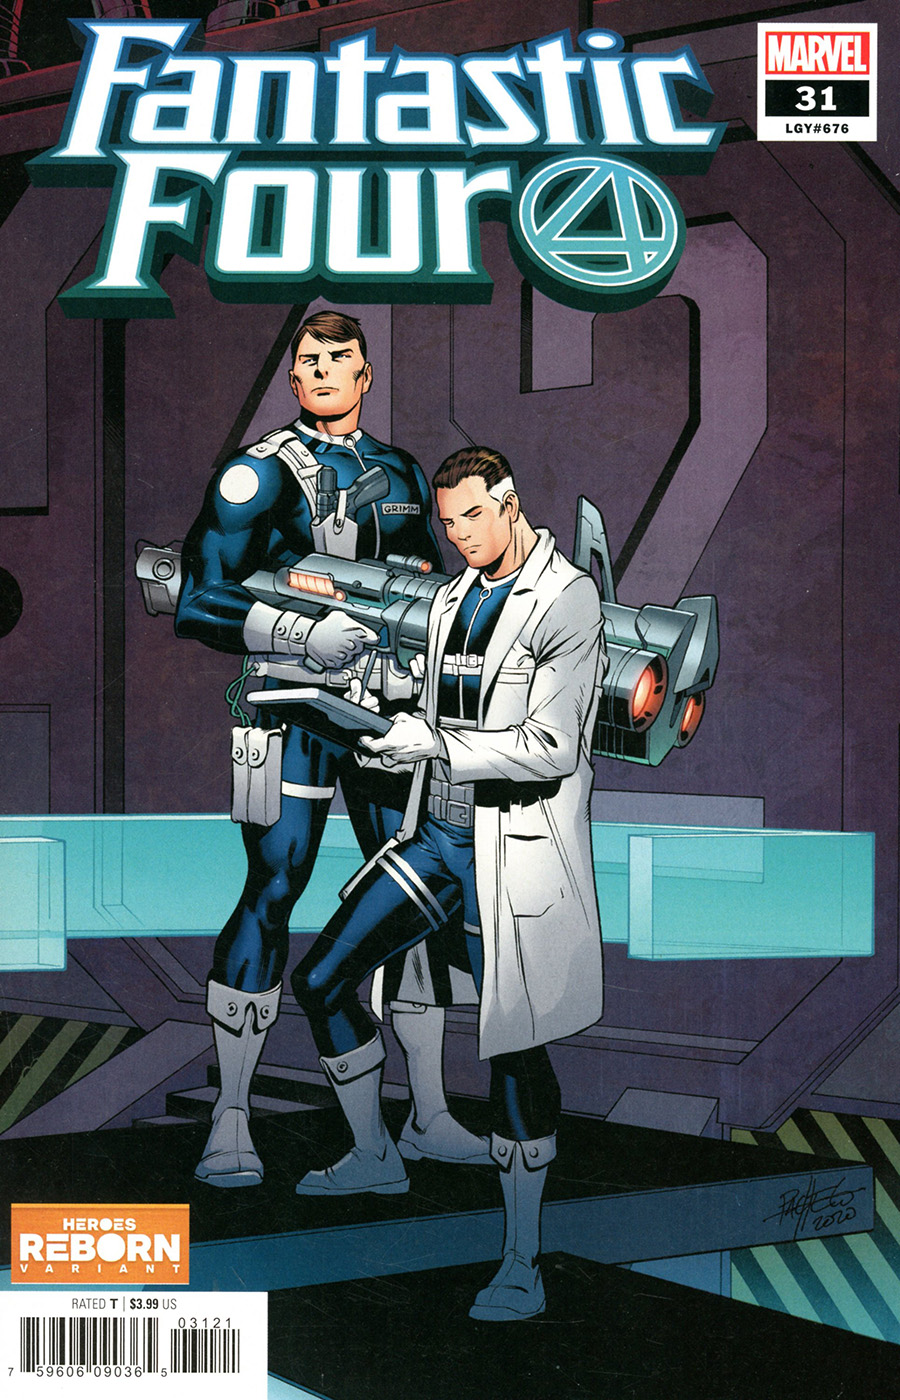 Fantastic Four Vol 6 #31 Cover B Variant Carlos Pacheco Heroes Reborn Cover